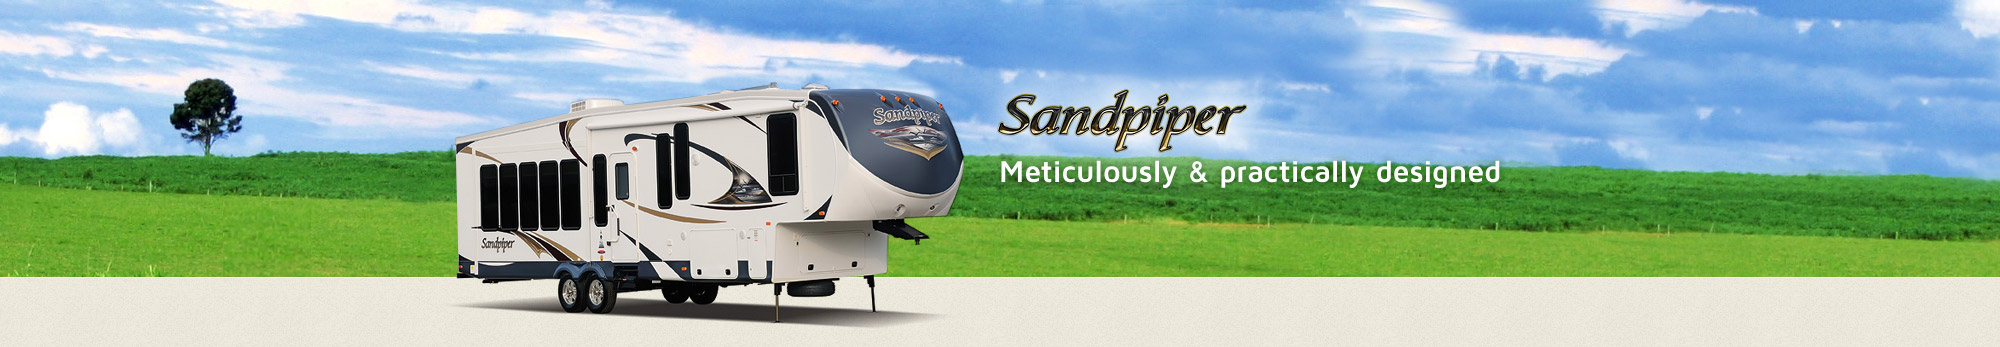 Check our meticulously designed Sandpiper RV by Forest River